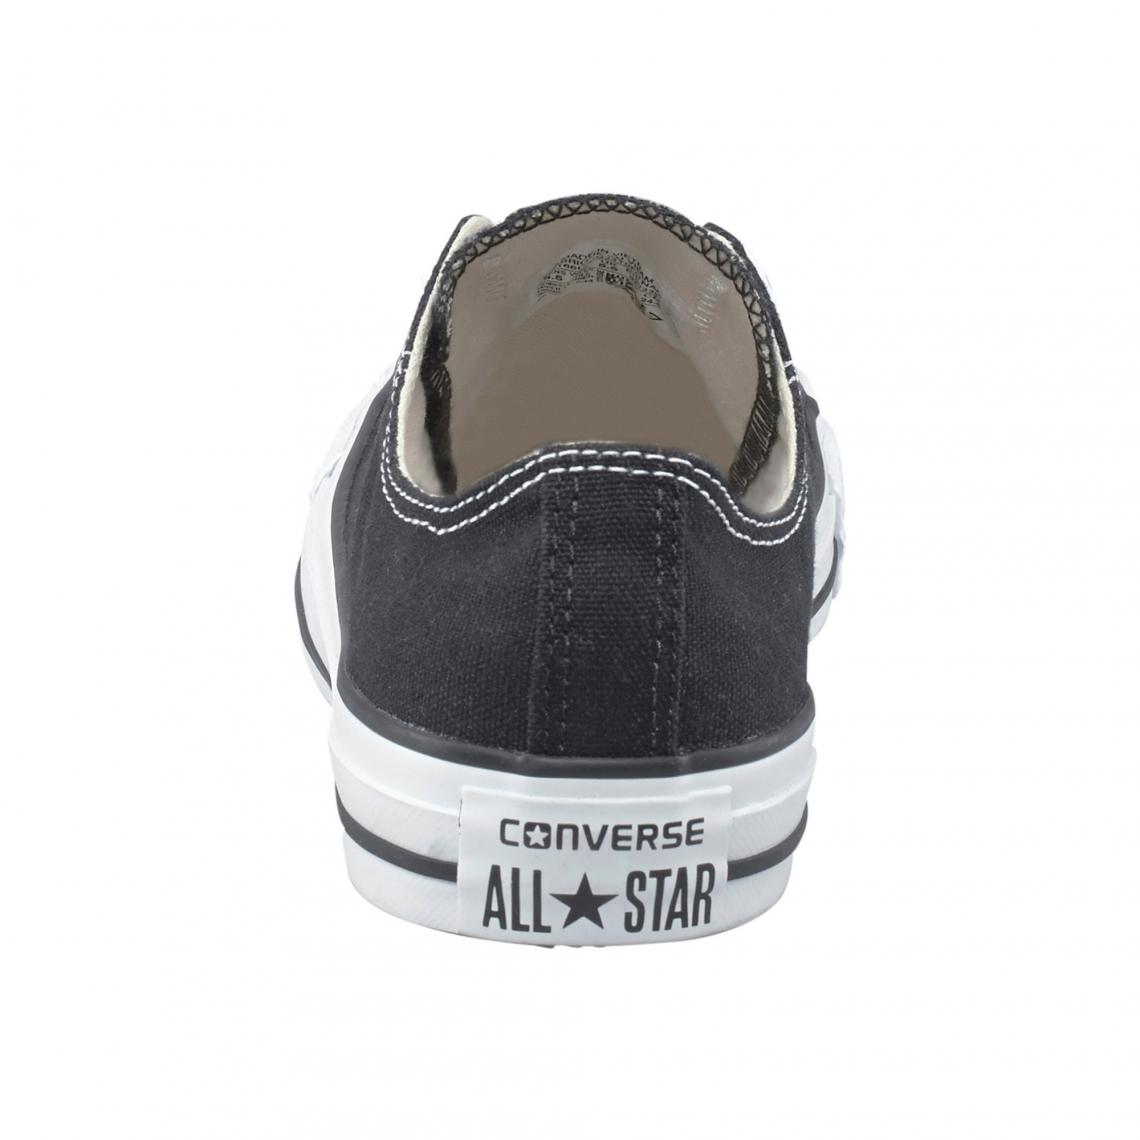 7f0eb0172af Converse All Star Ox tennis basses à lacets homme - Noir